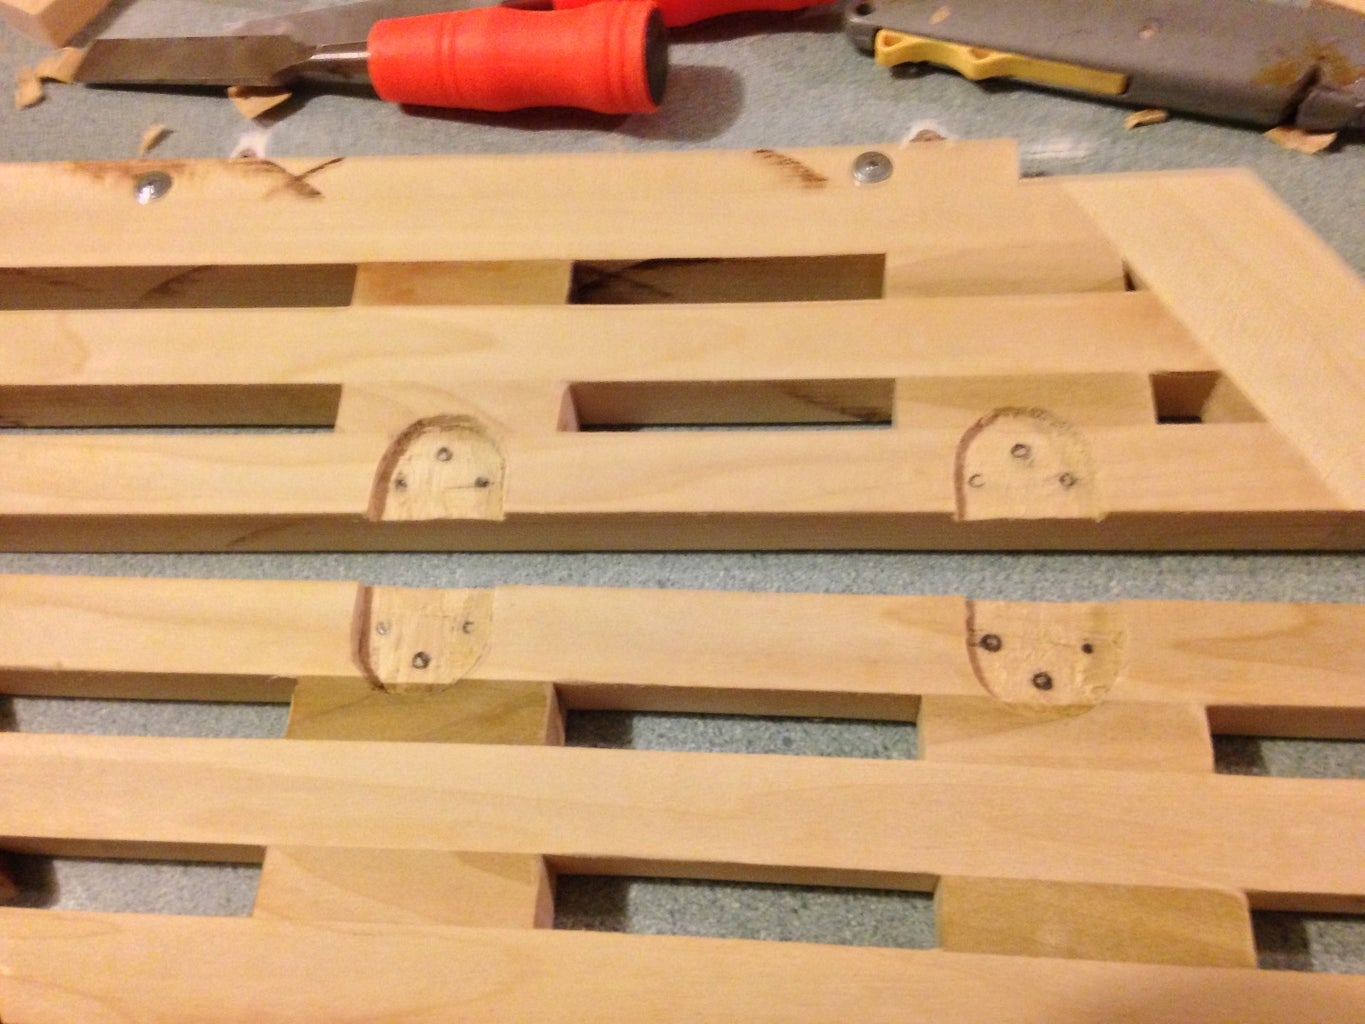 My Kingdom for a Router With Routing Jig